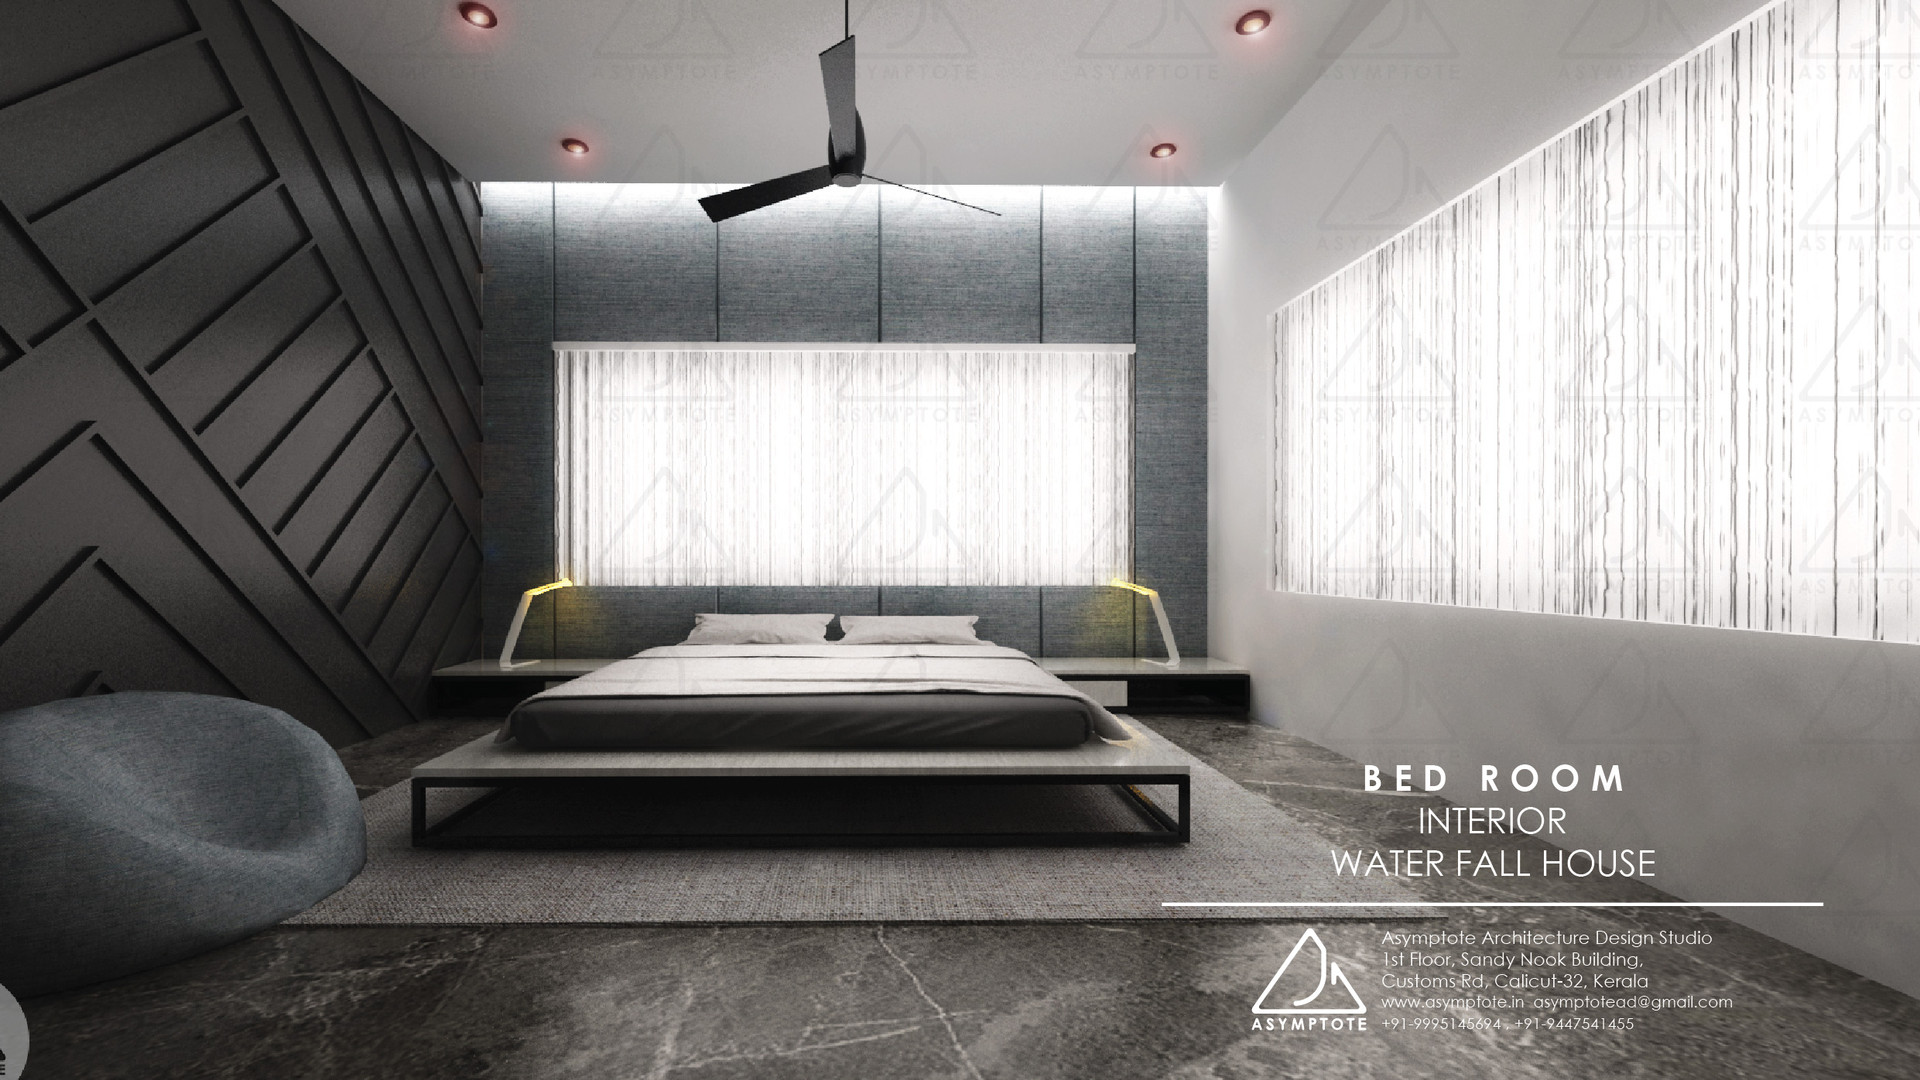 BED ROOM INTERIOR AND OTHER SPACE-02.jpg